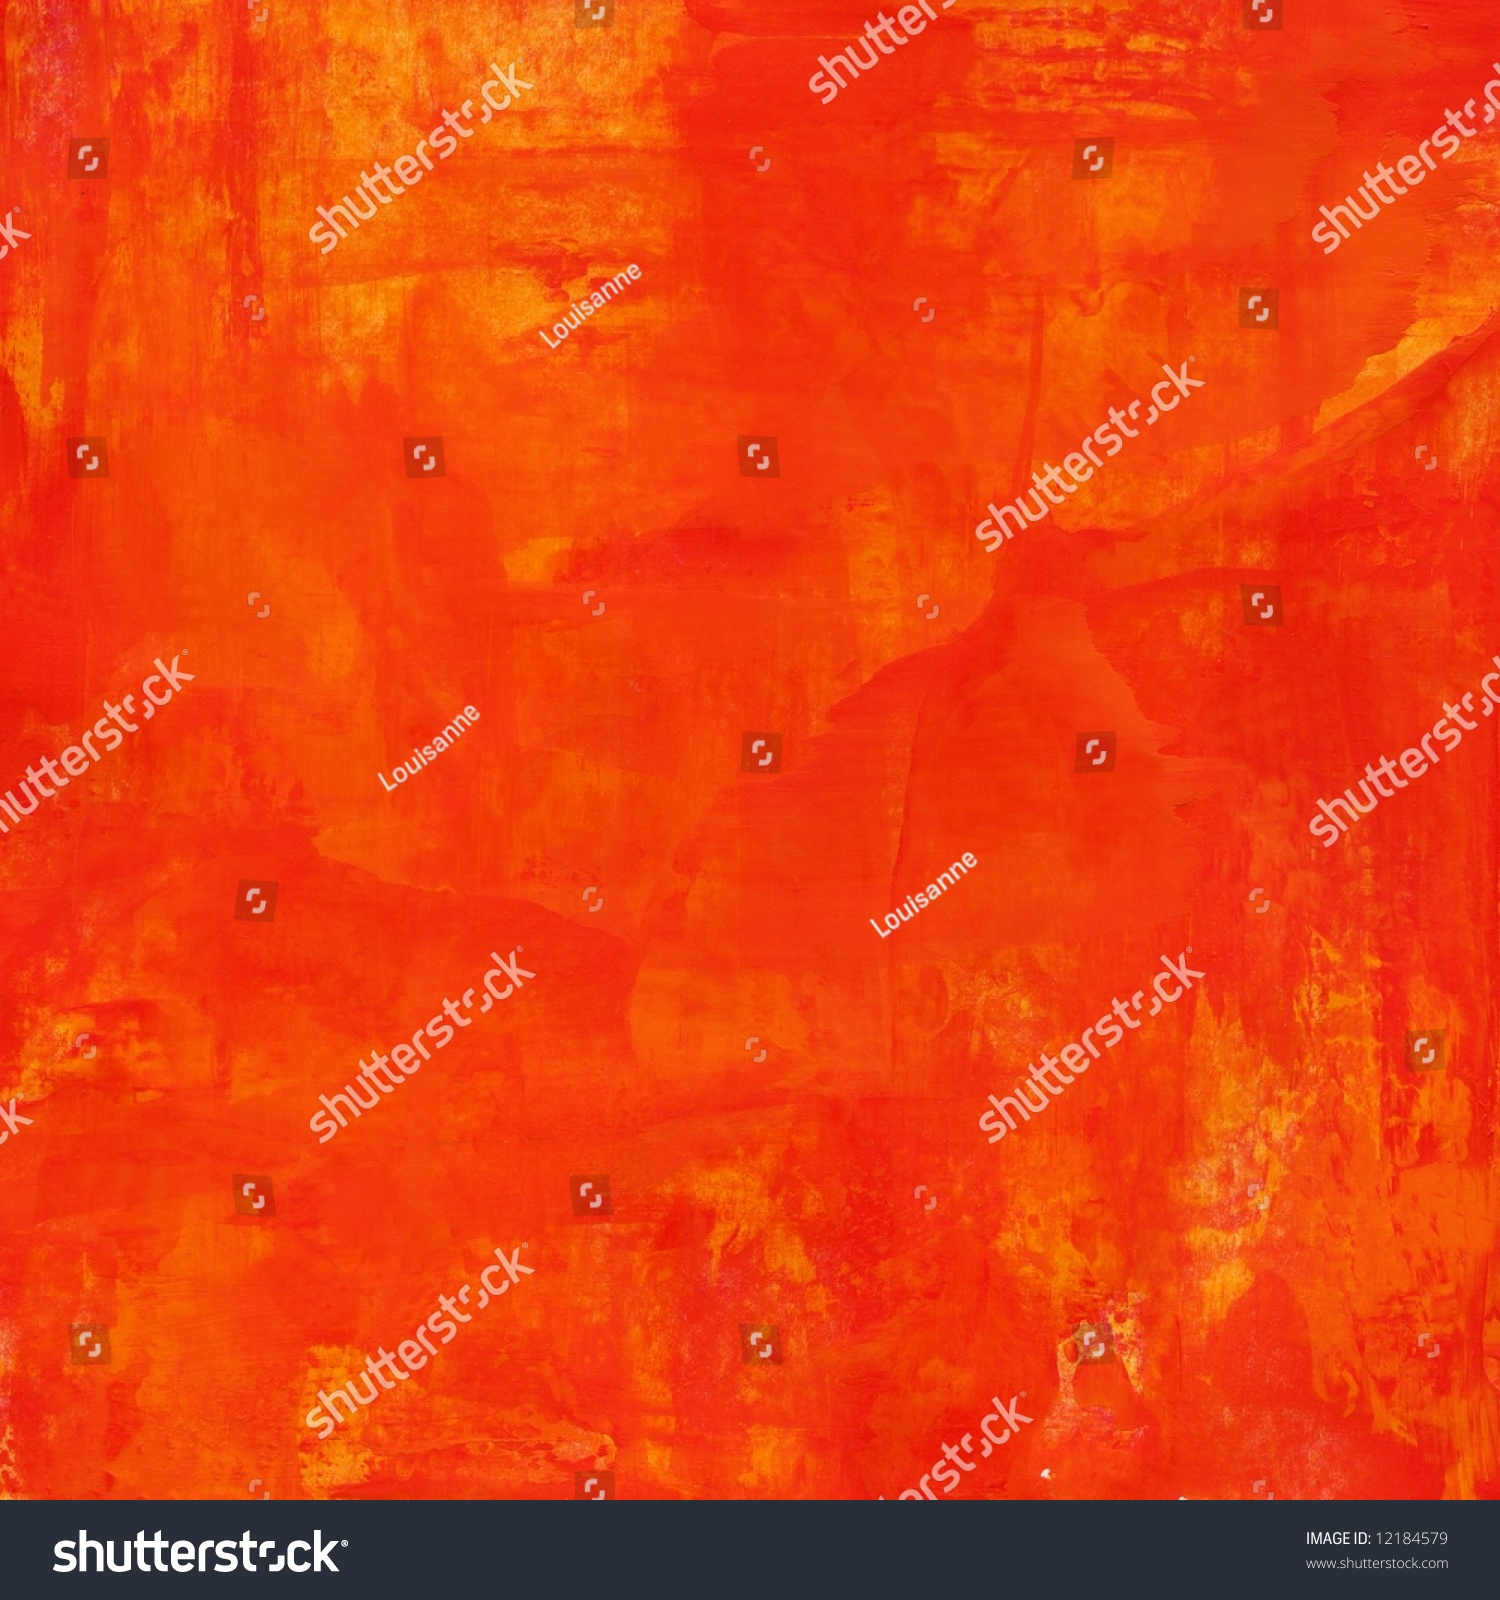 Different Shades Of Orange Abstract Painted Background Texture Different Shades Stock Photo